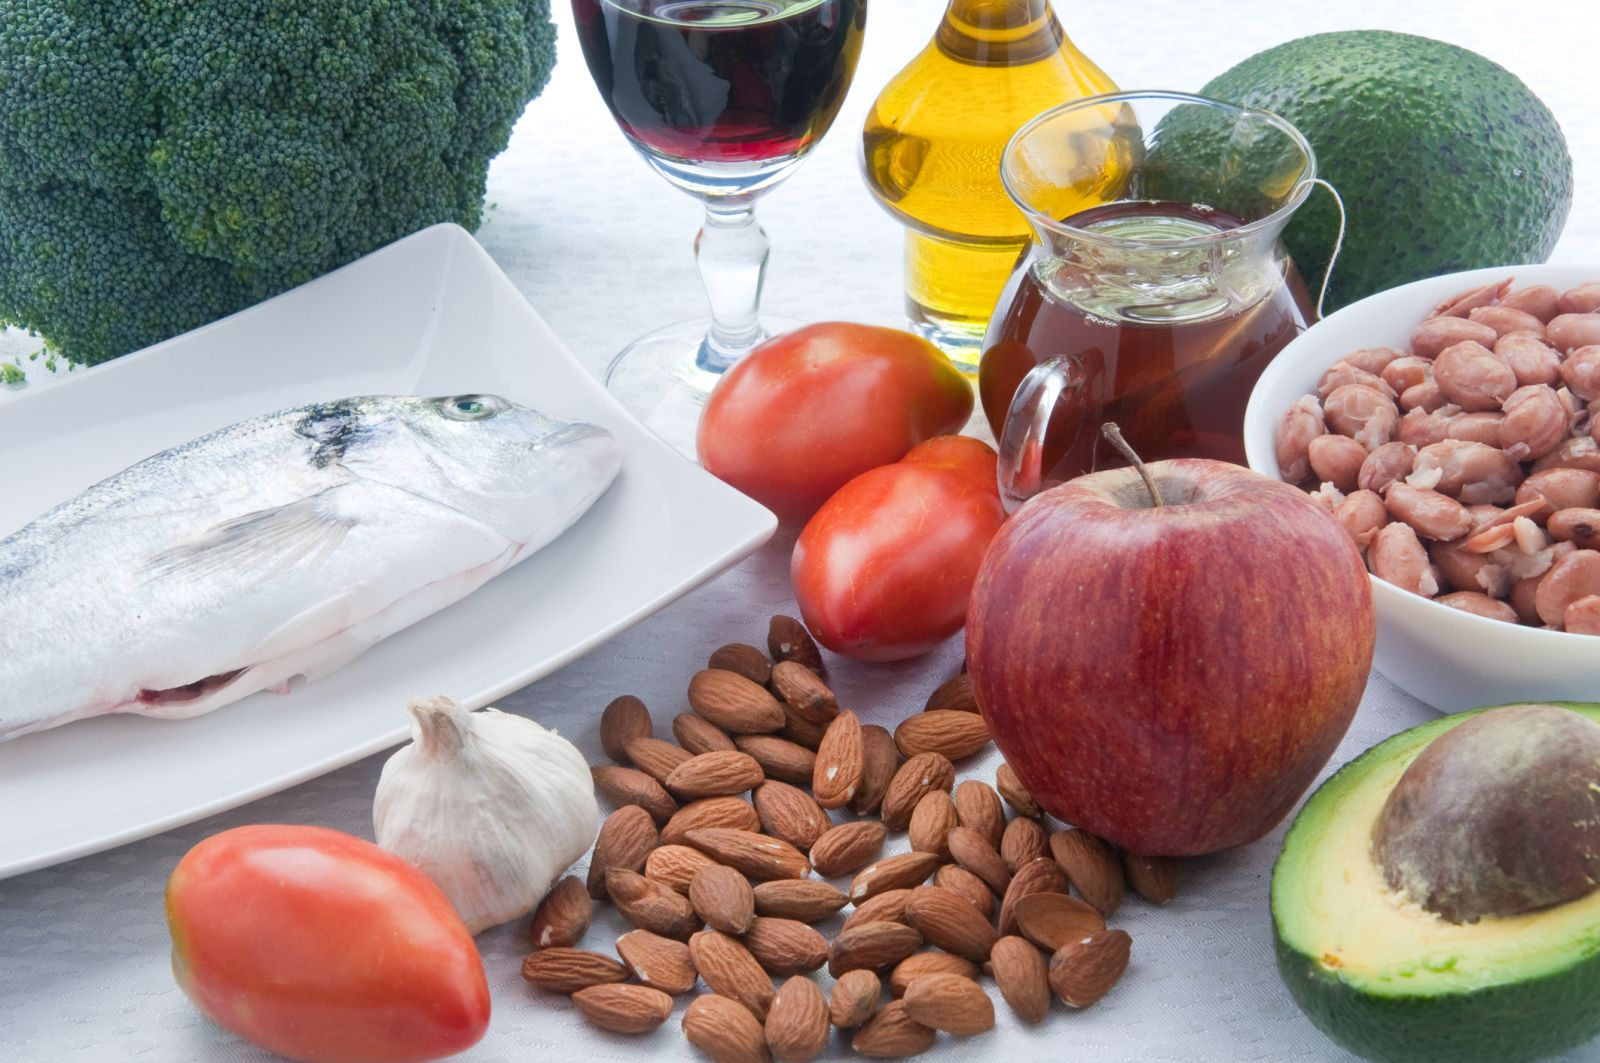 Top Foods To Lower Your Cholesterol And Protect Your Heart